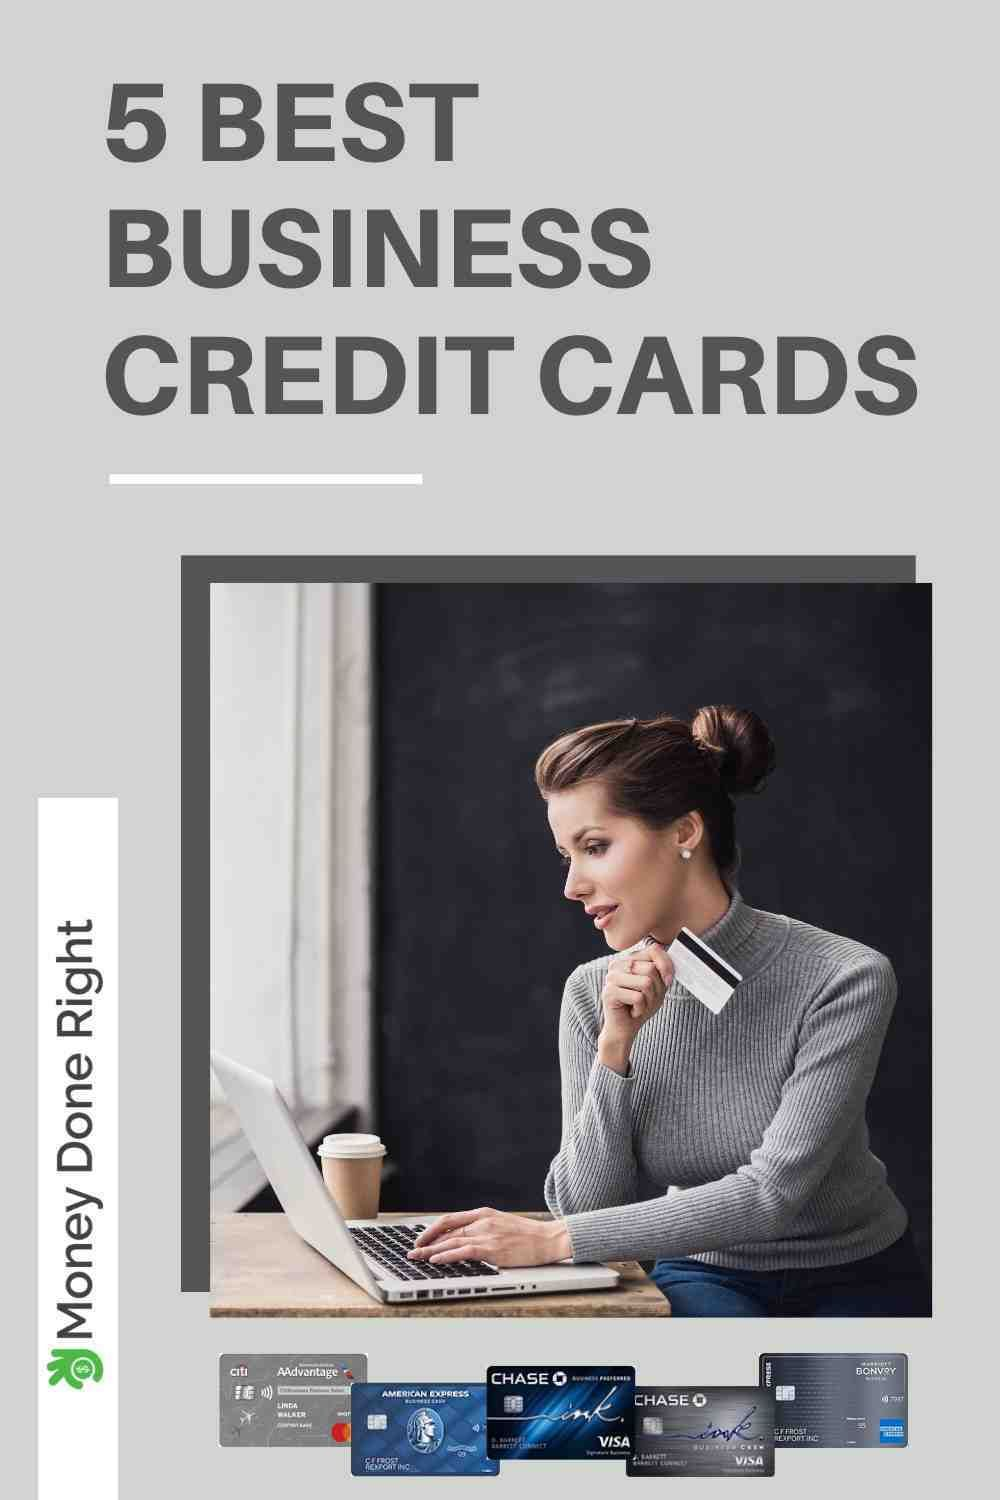 5 Best Business Credit Cards March 2021 Business Credit Cards Credit Card Business